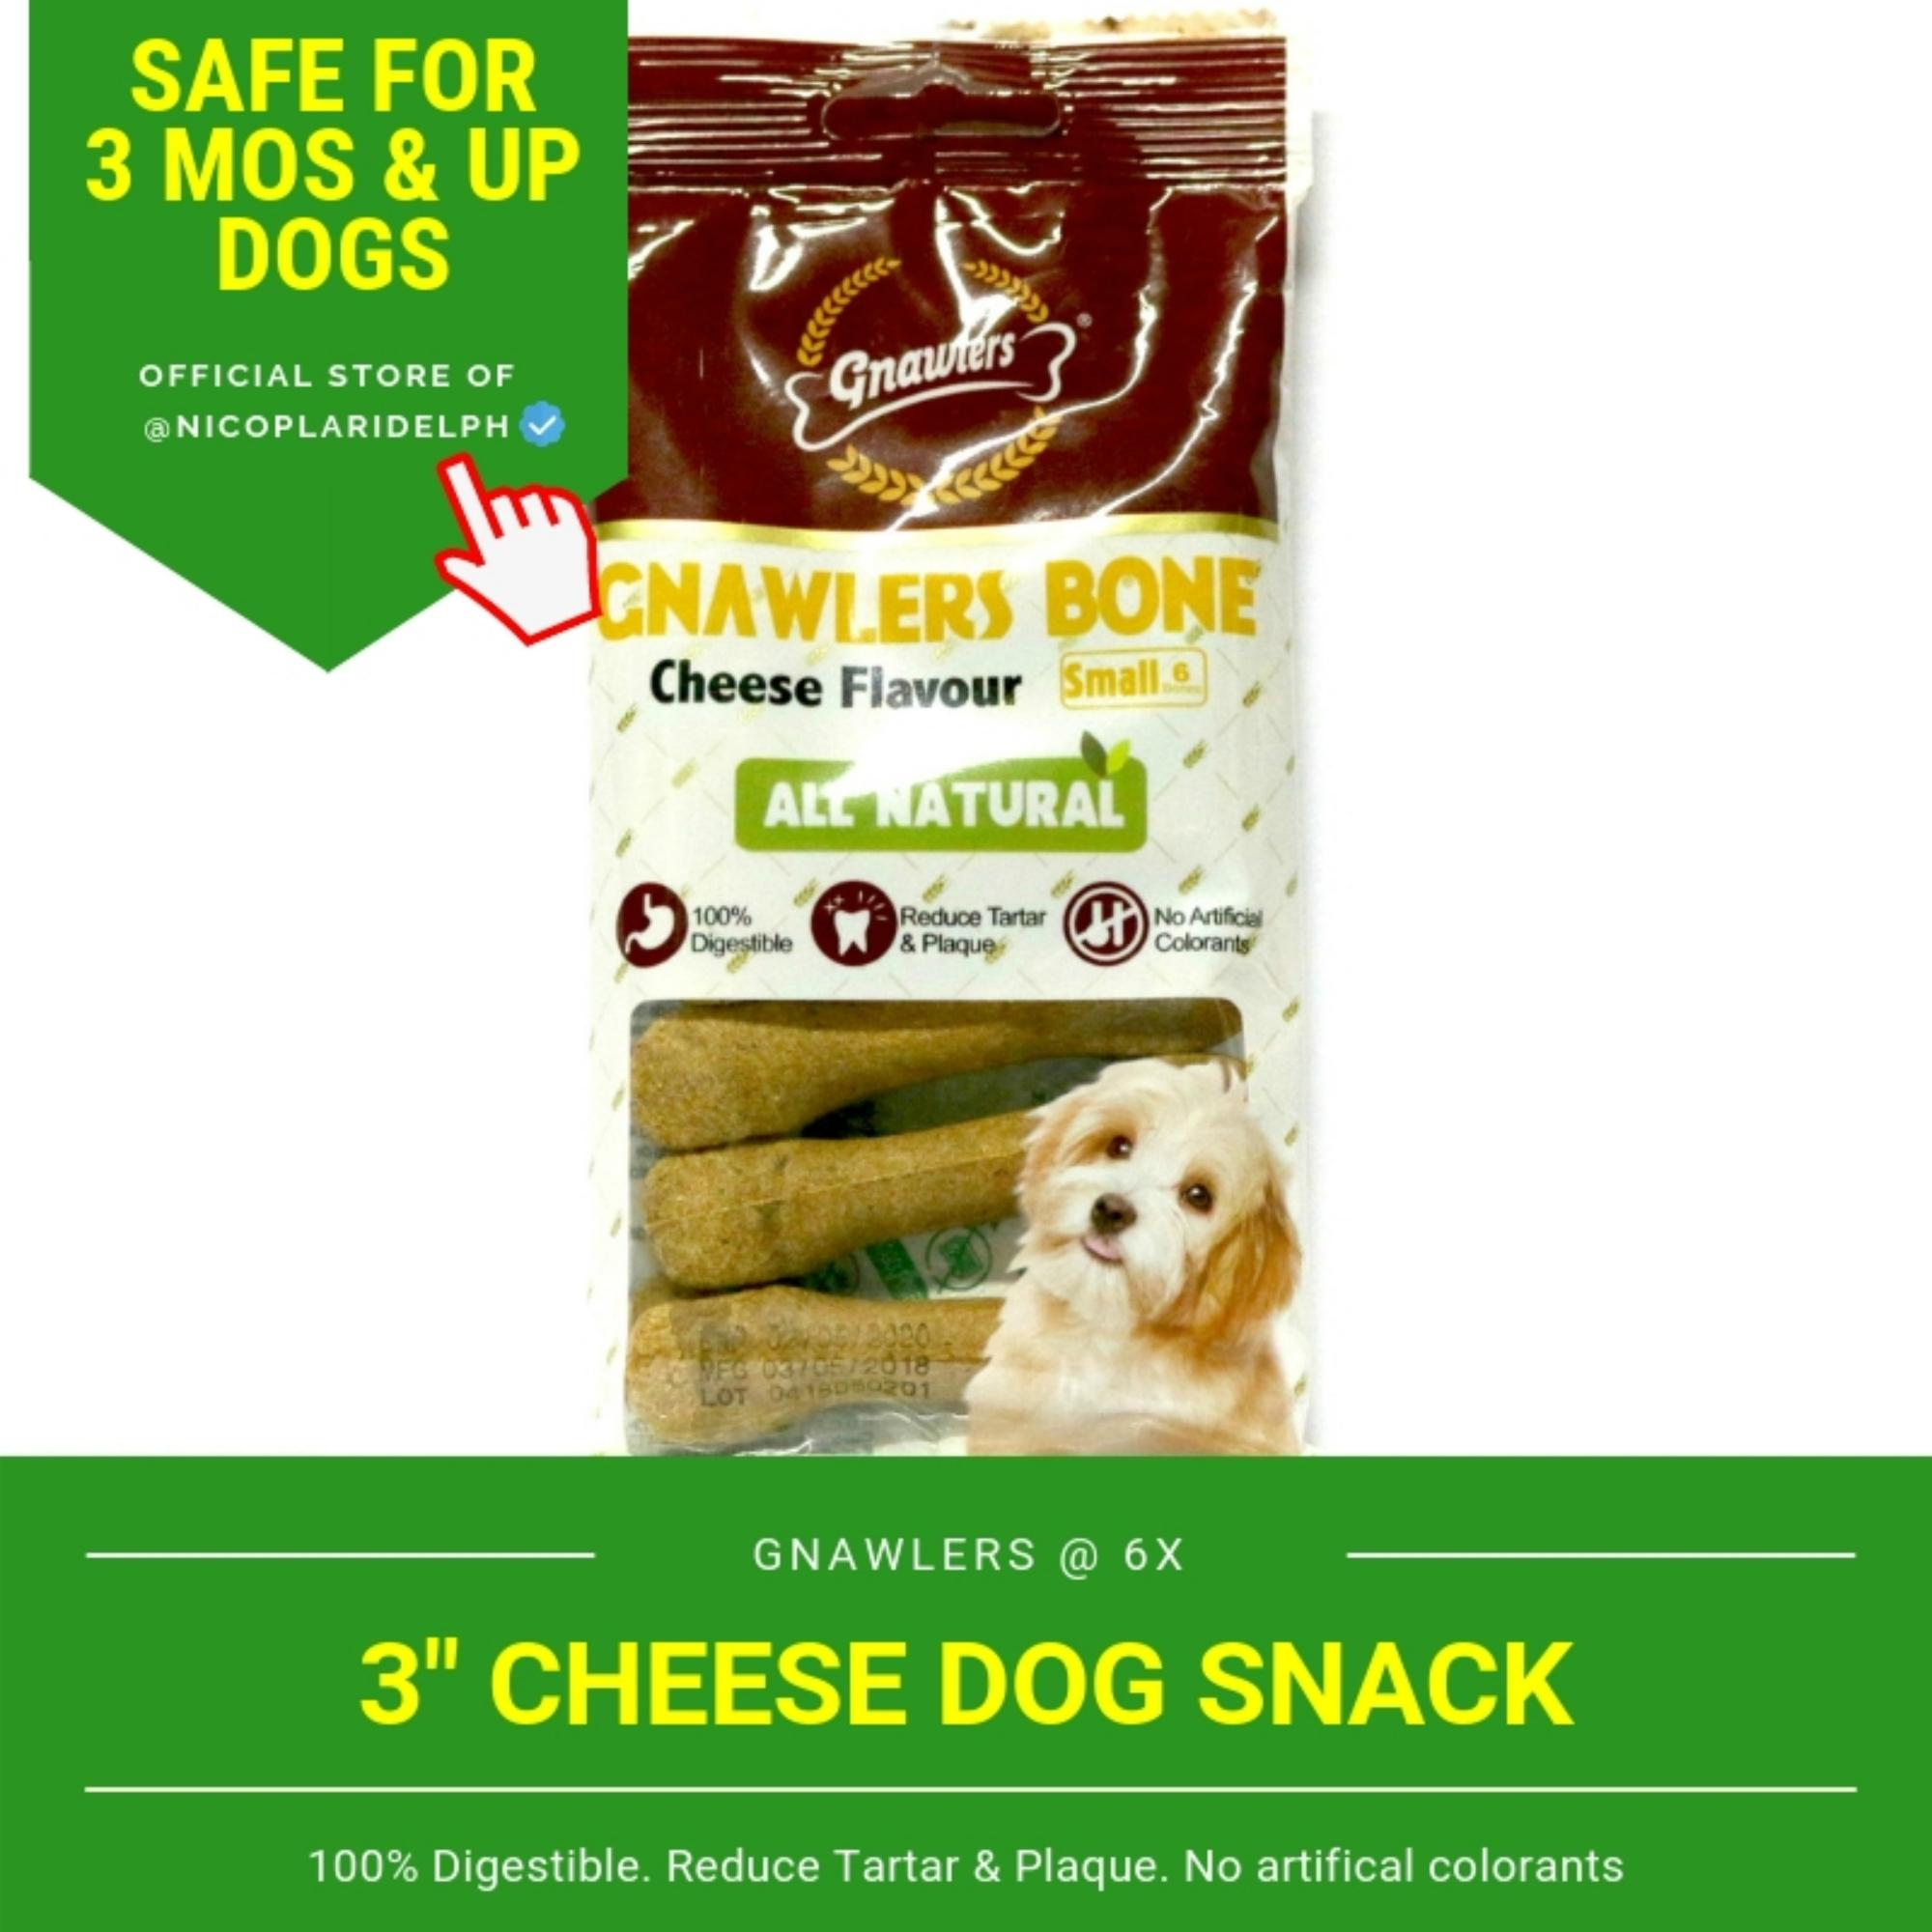 Gnawlers 3-Inch Cheese Dog Snack (108g) By Nicoplaridelph.